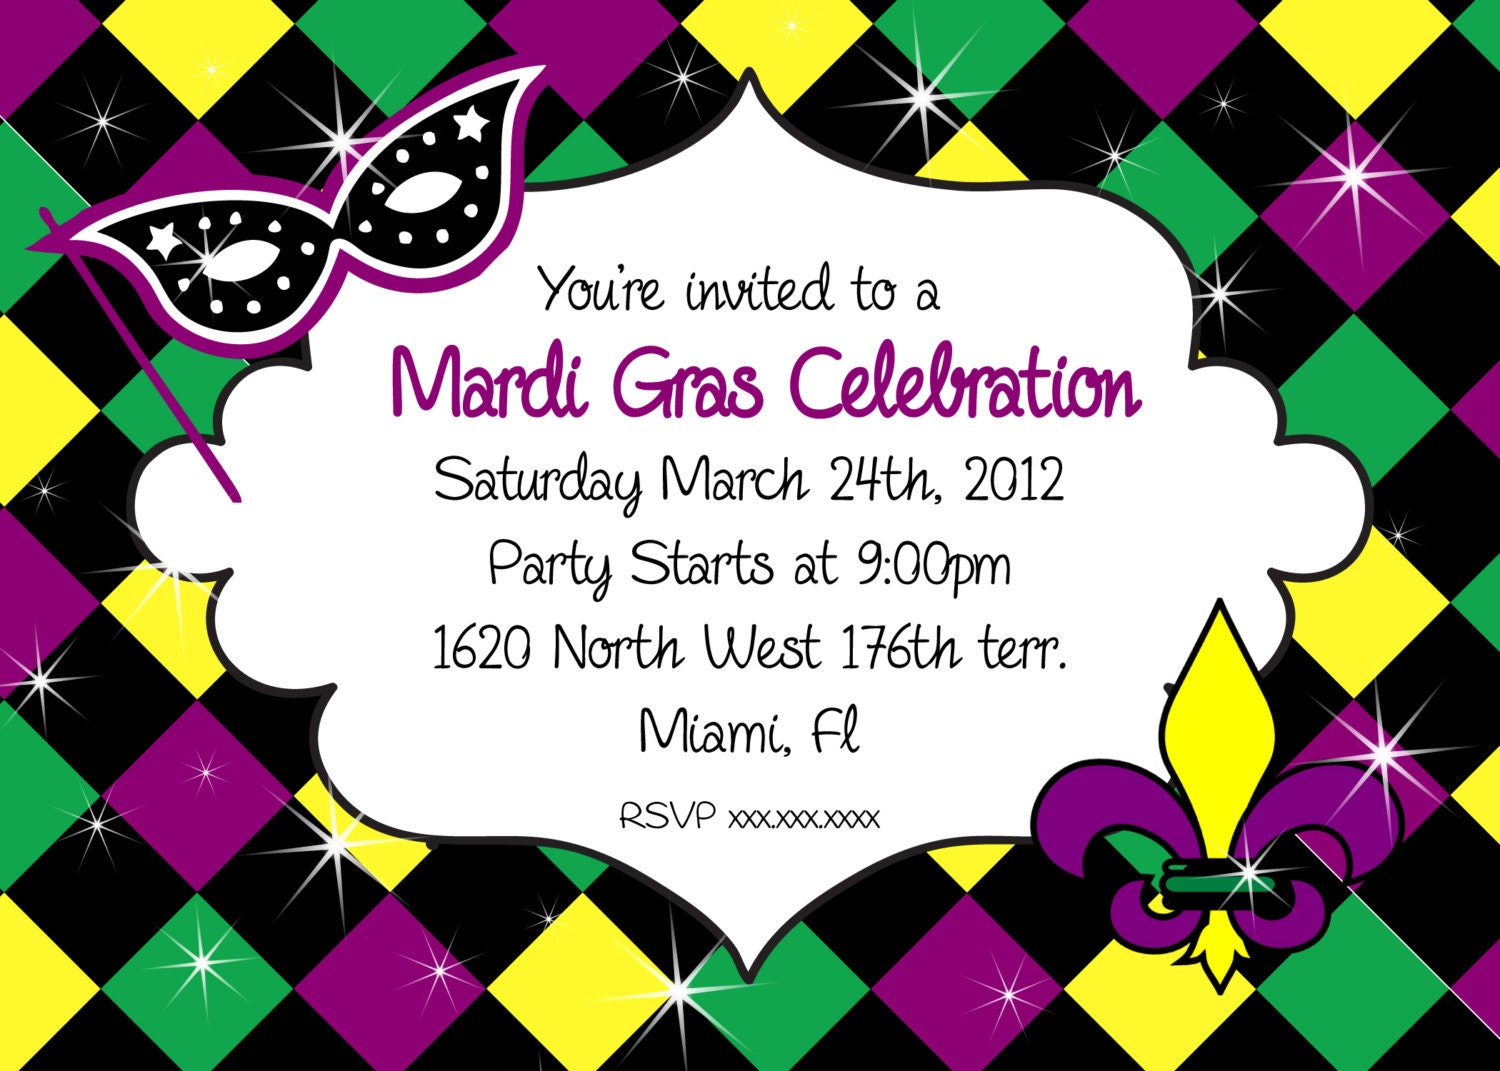 Mardi Gras Invitation Party Printable Invitation Mardi Gras